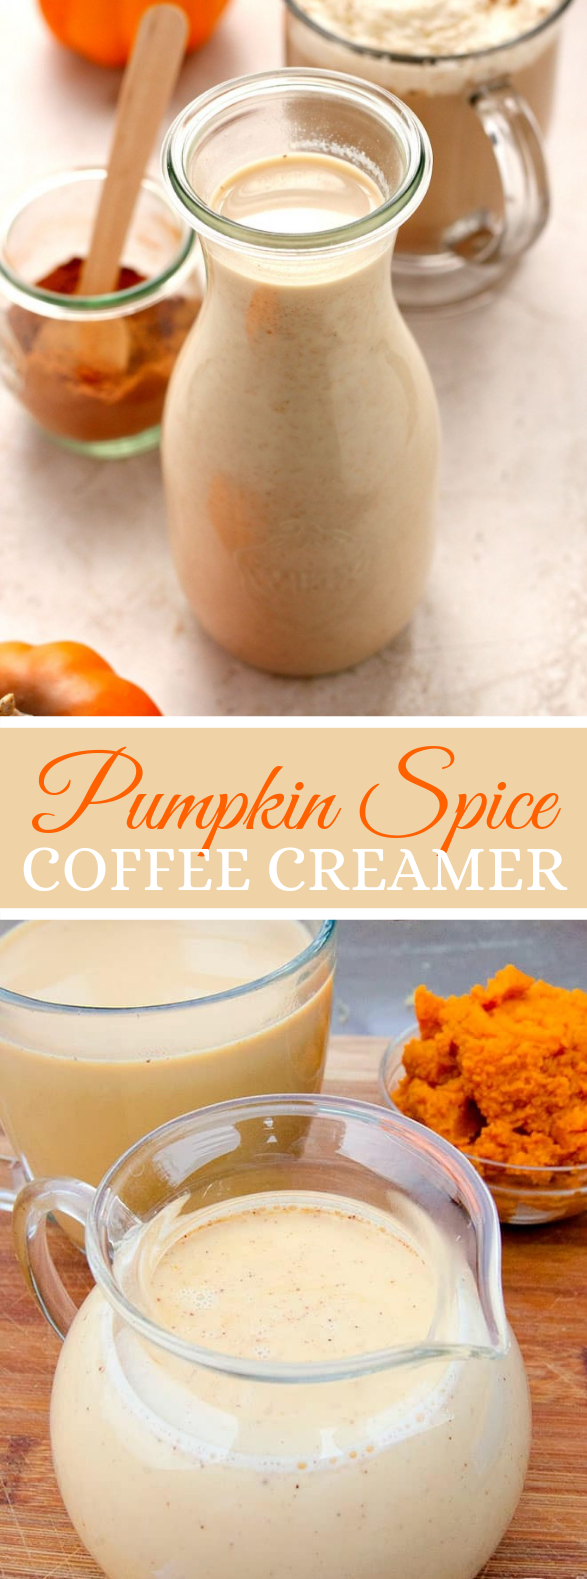 Pumpkin Spice Coffee Creamer #drinks #coffeedrink